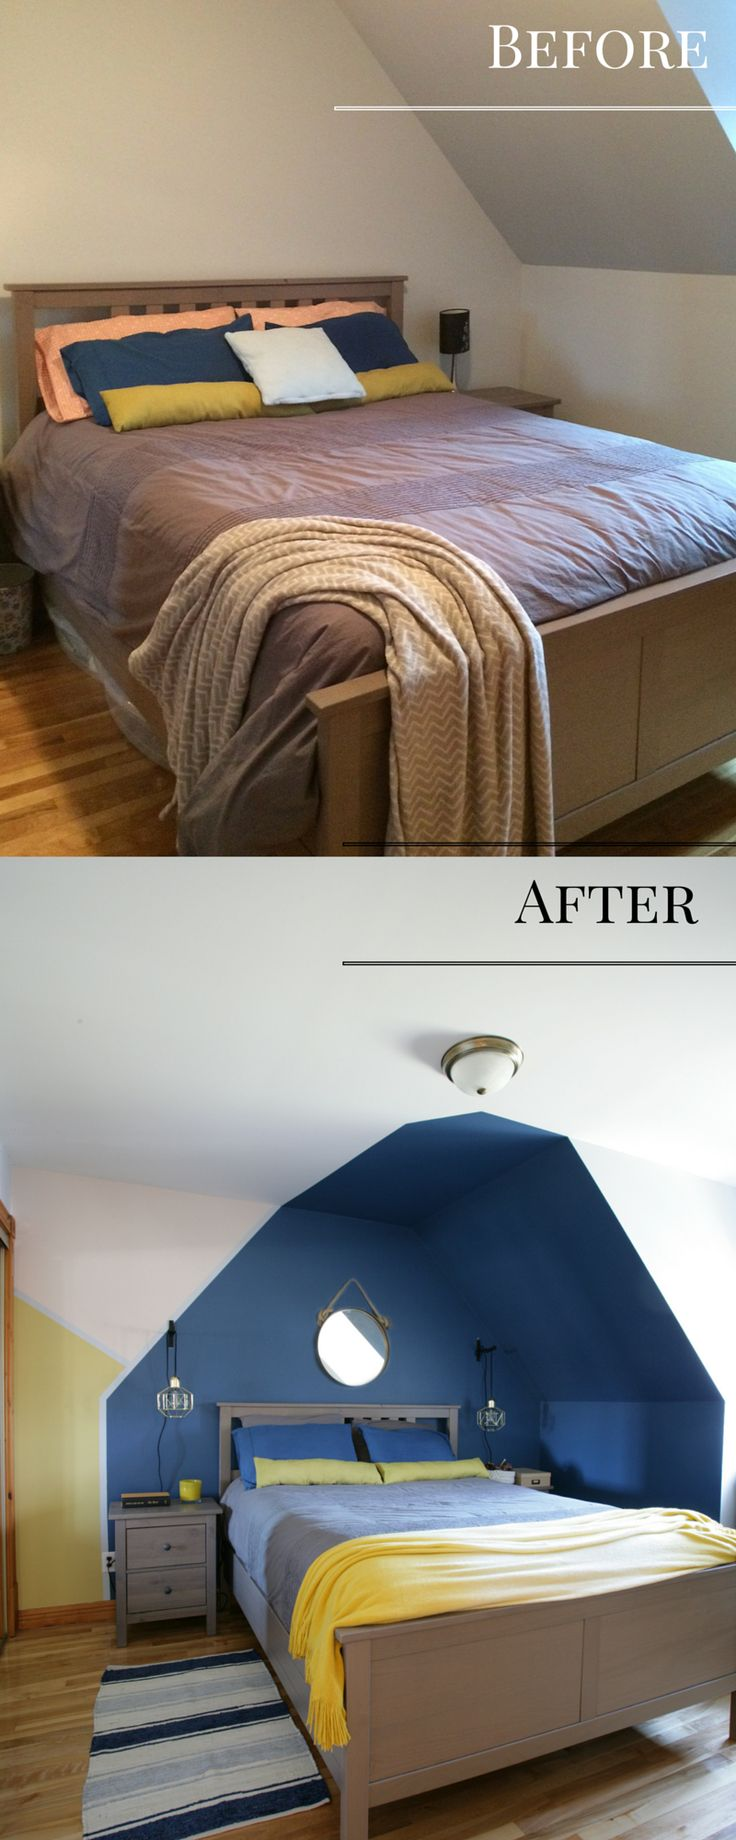 Before and after of a bedroom in an attic where I used the ceiling to paint a headboard that looks like a house. I used blue paint above the bed and created color blocks in yellow and pink / Avant après d'une chambre sous une mansarde ou les pentes du plafond ont été utilisées pour créer une tête de lit en forme de maison grâce à la peinture bleu marine.